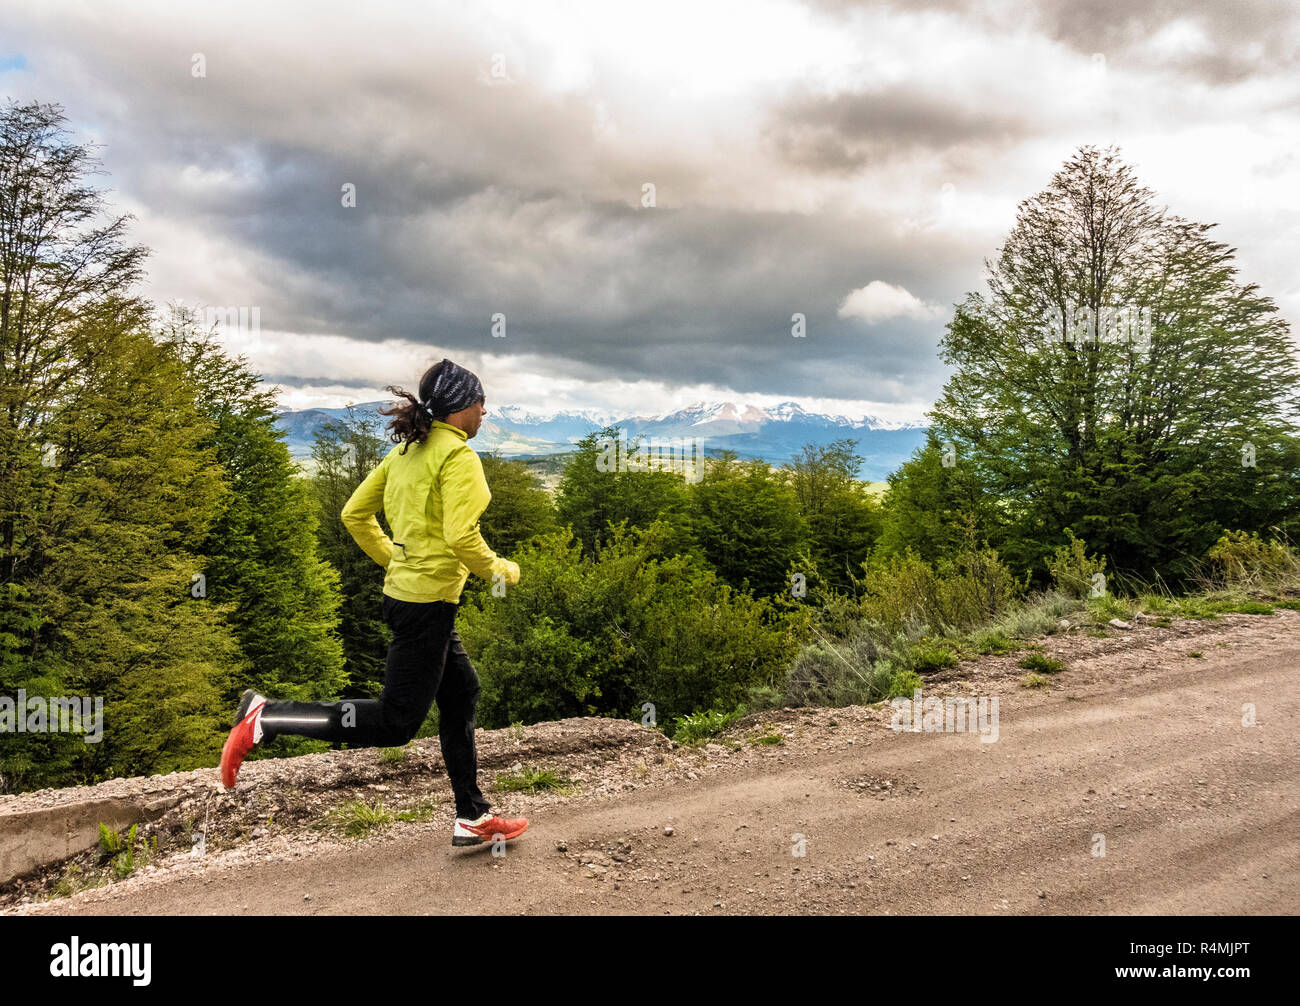 Athlete running on a dirt road near Coyhaique, Chile in the Aysen Region of Patagonia. - Stock Image